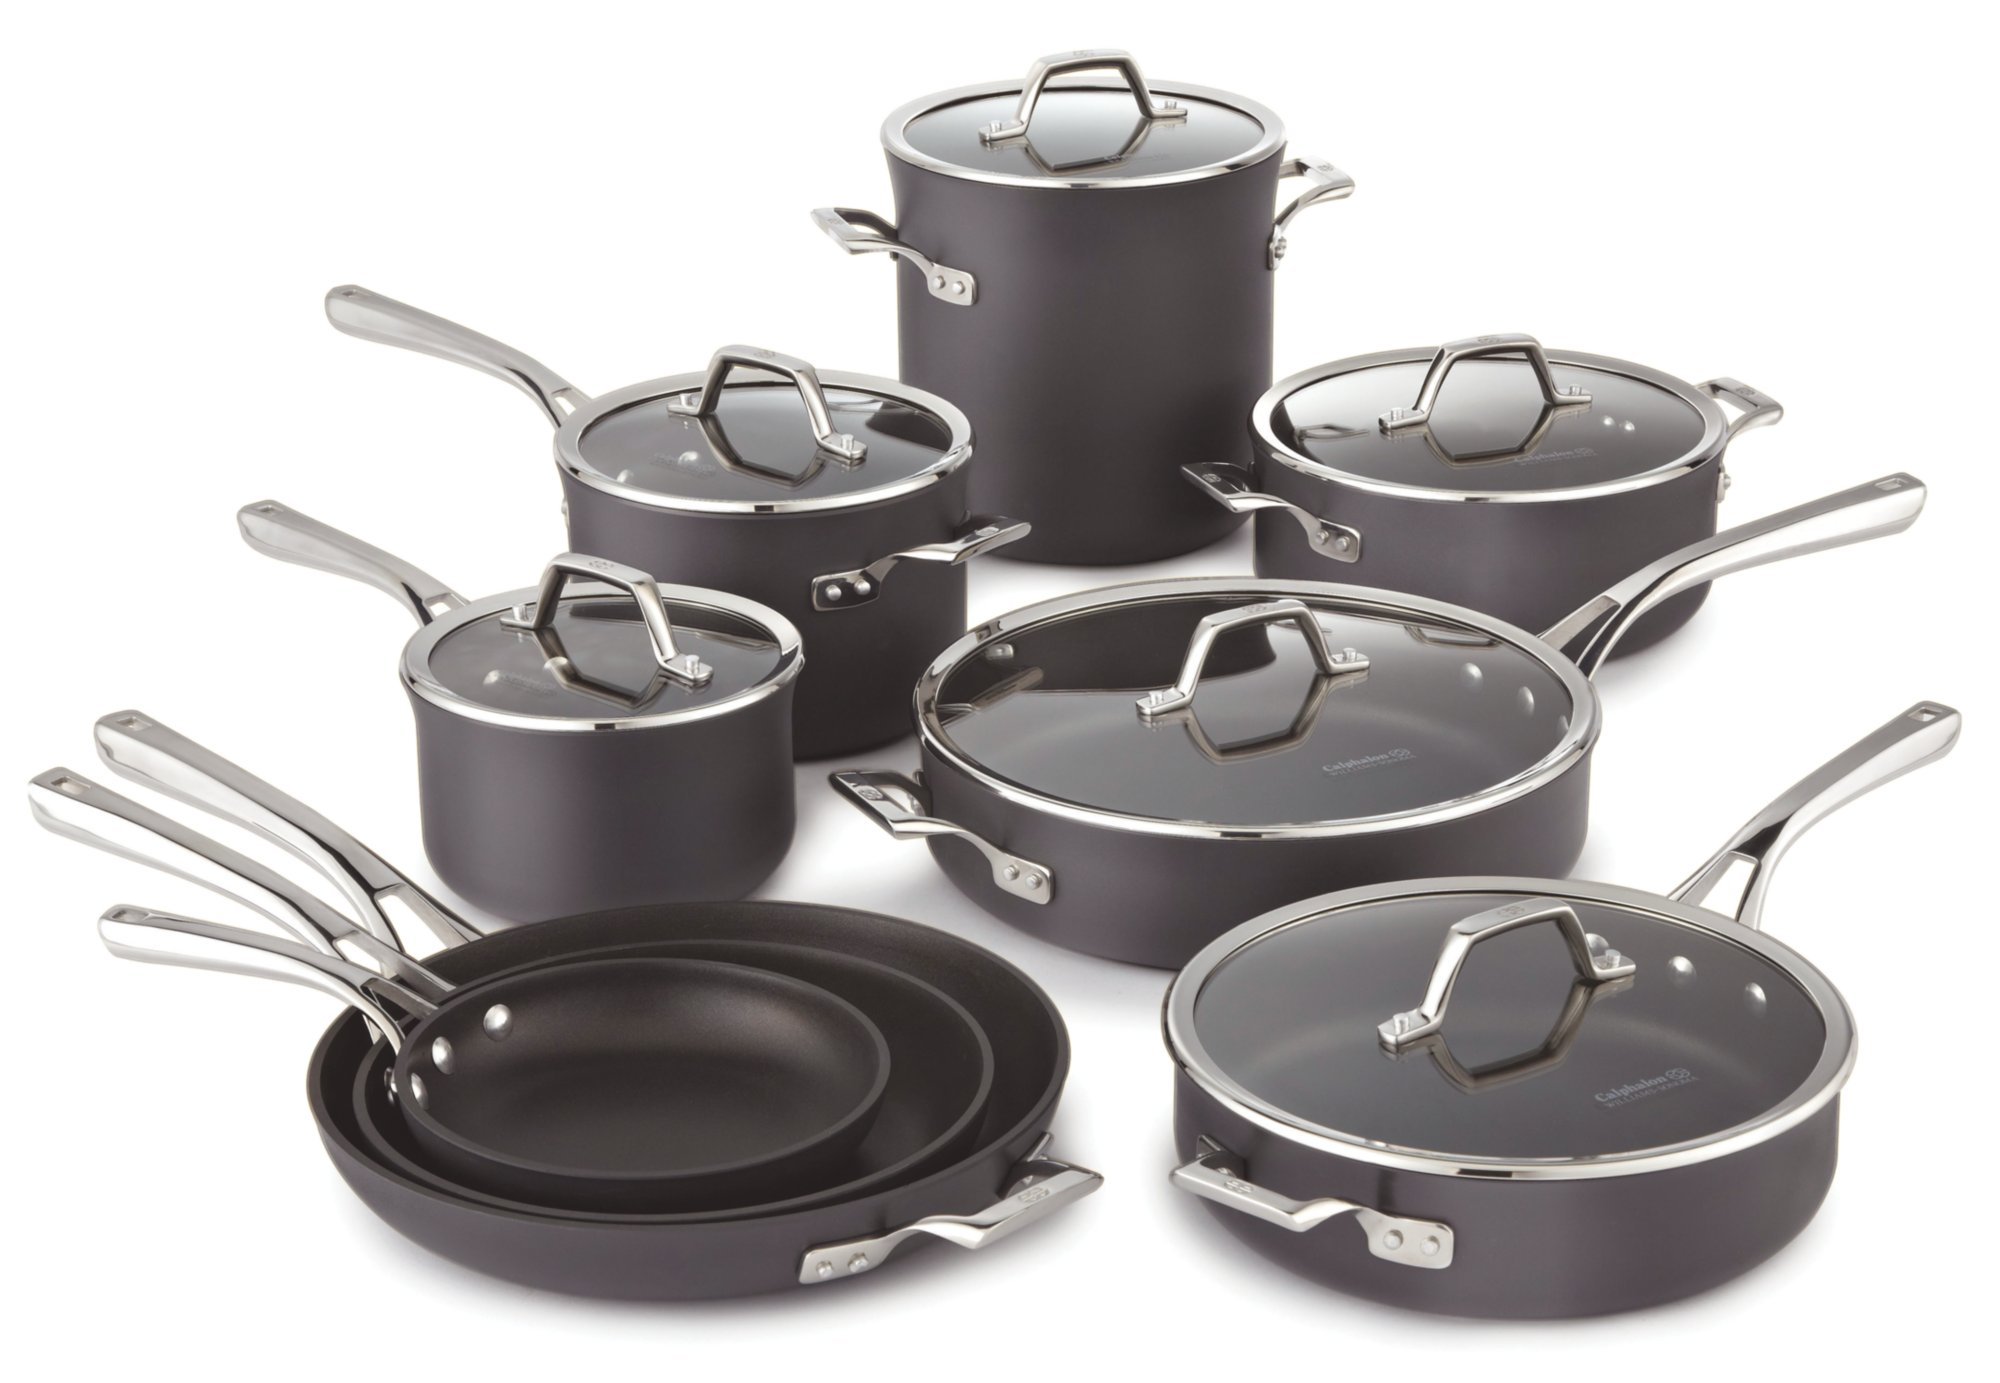 Calphalon Williams-Sonoma Elite Nonstick 15-pc. Cookware Set